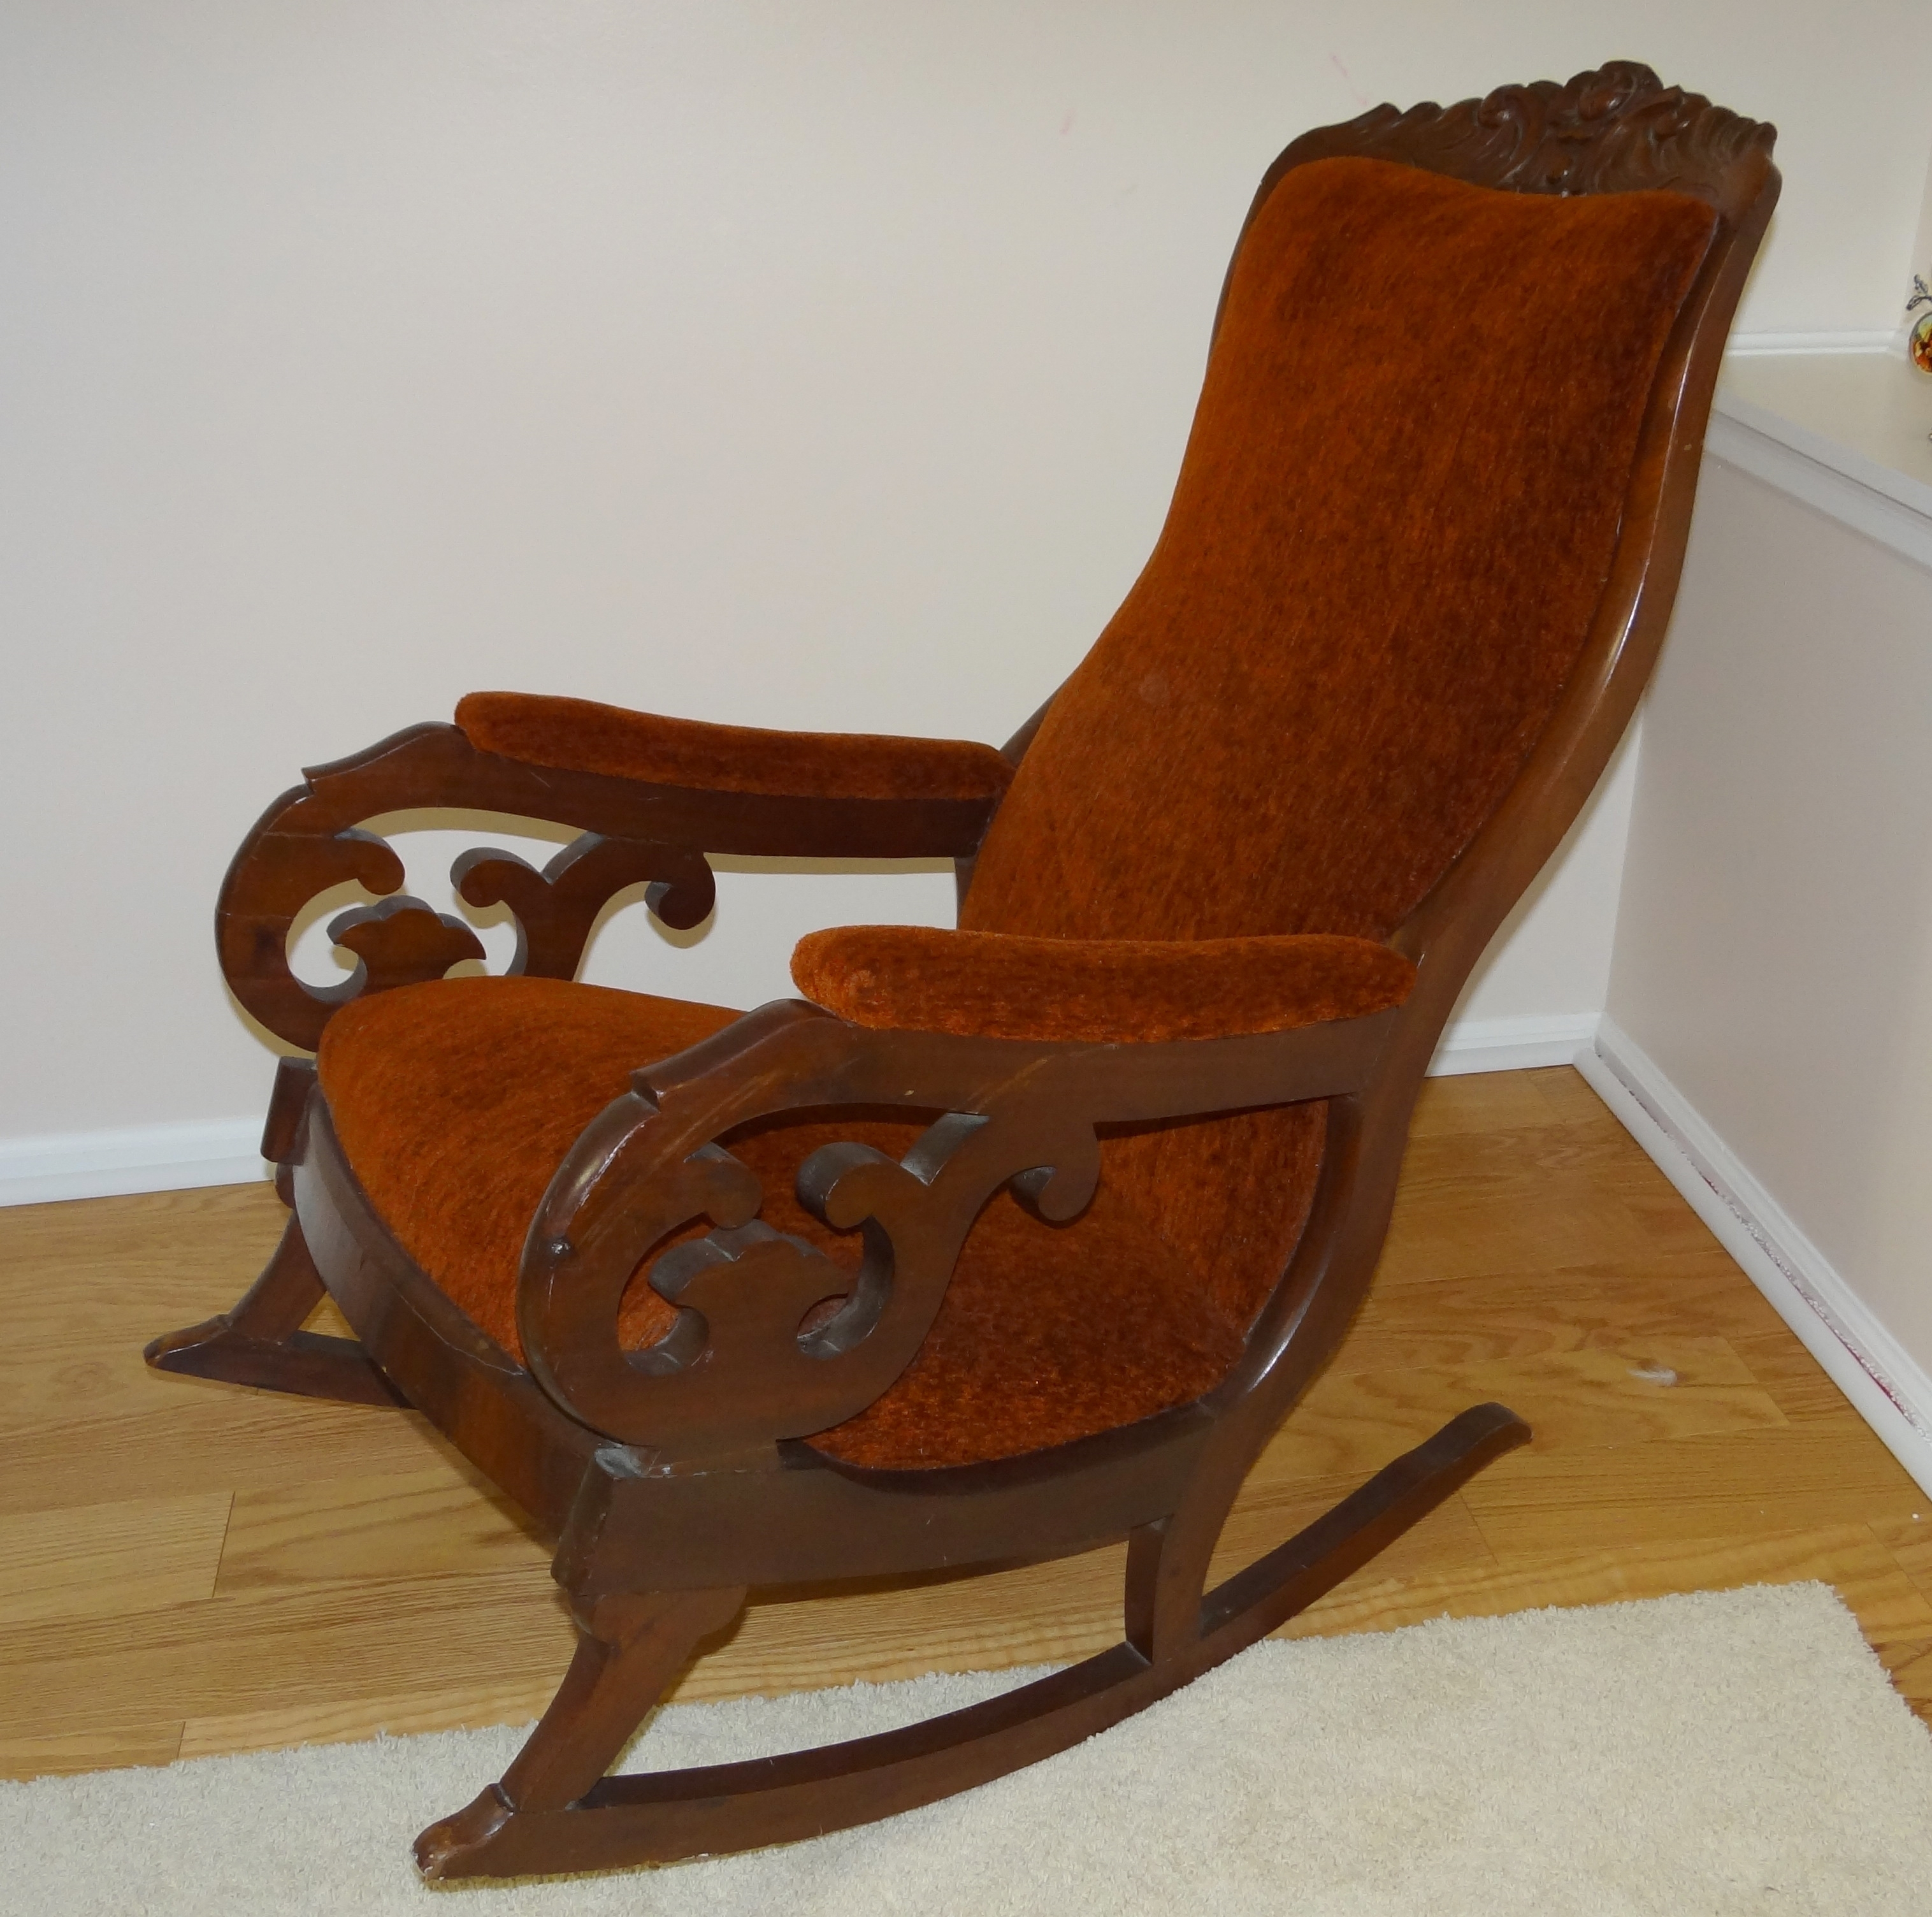 Awesome Old Fashioned Rocking Chair With Furniture Idea Quaqua With Old Fashioned Rocking Chairs (#3 of 15)